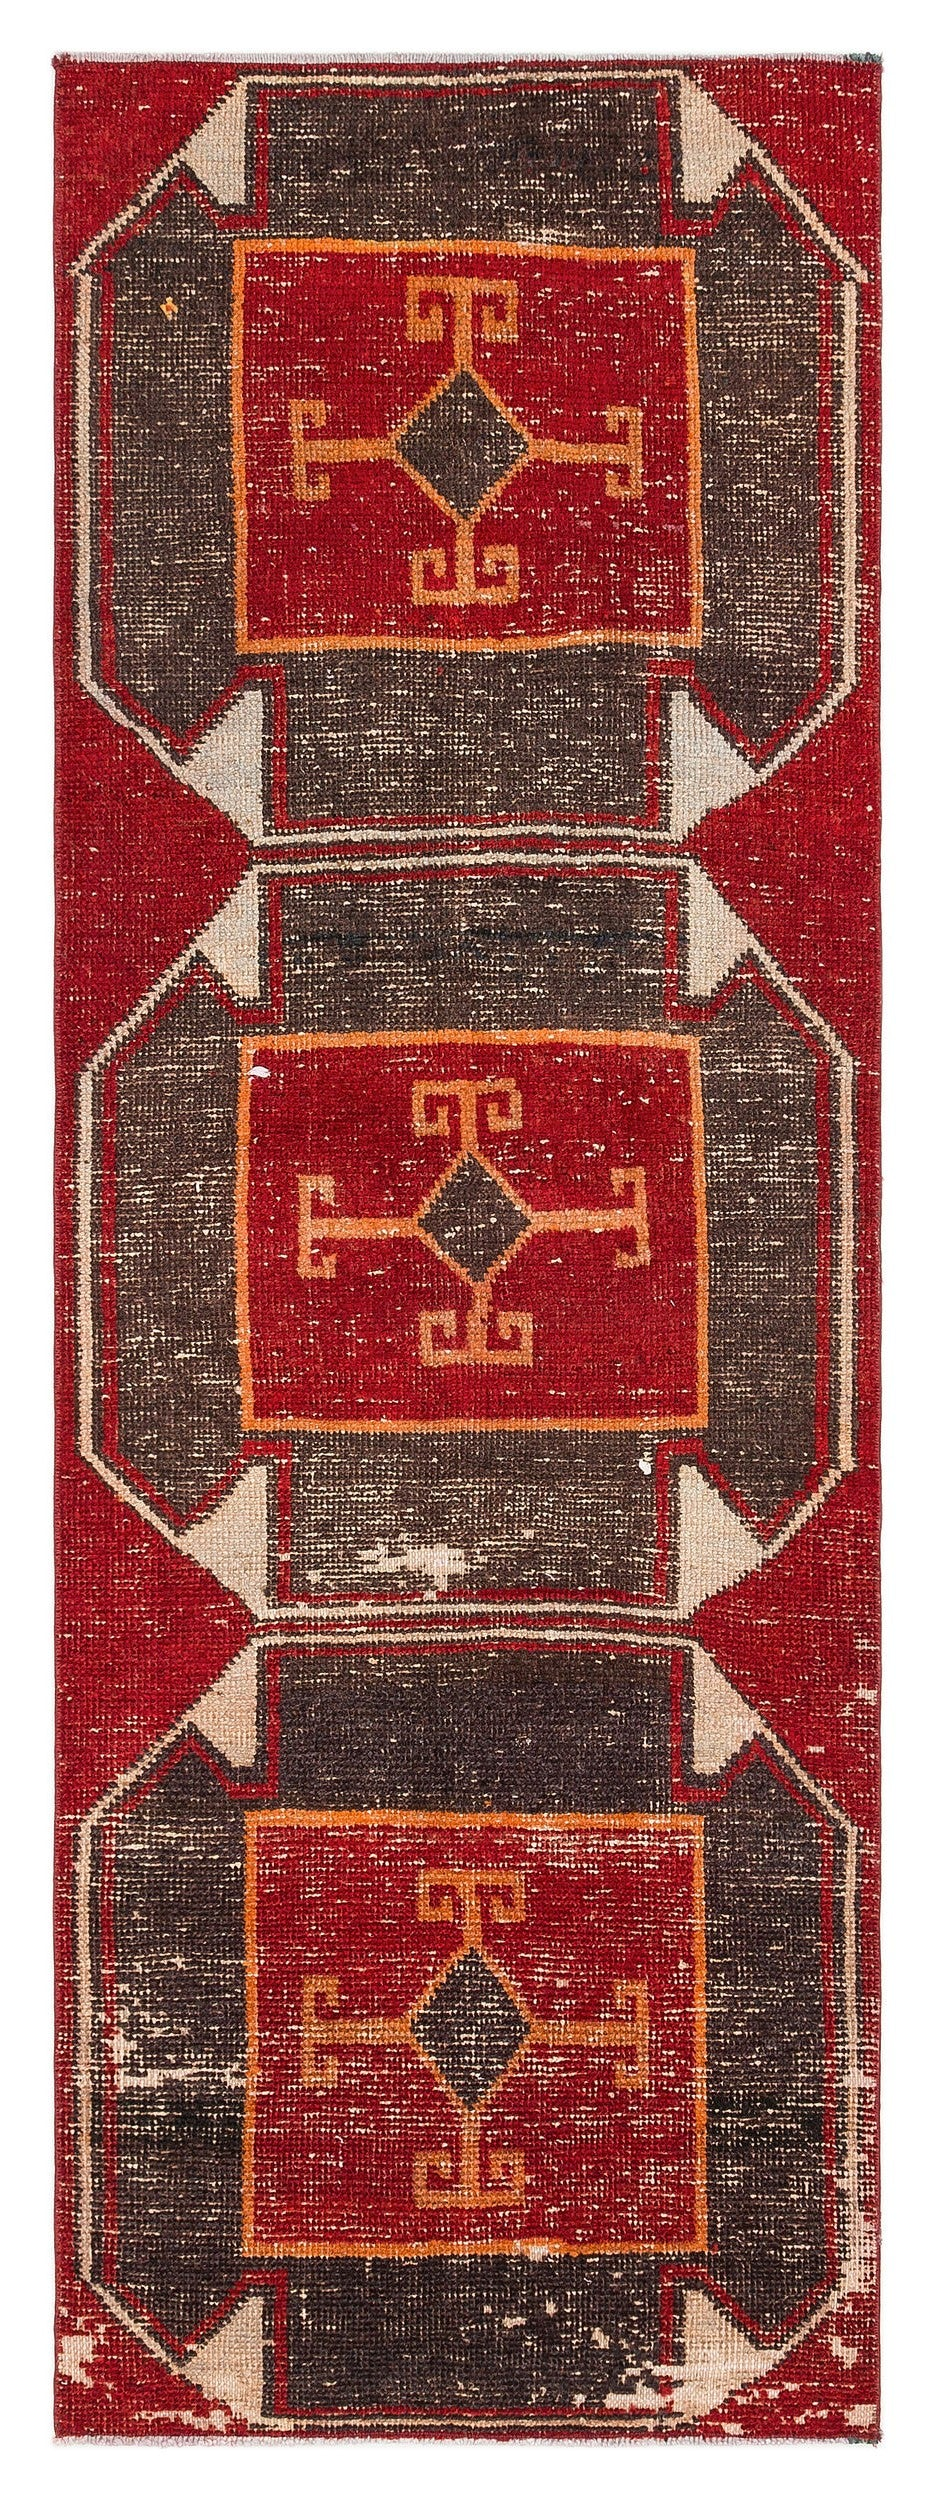 Naturel Over Dyed Anatolium Rug 2'5'' x 6'9'' ft 73 x 207 cm